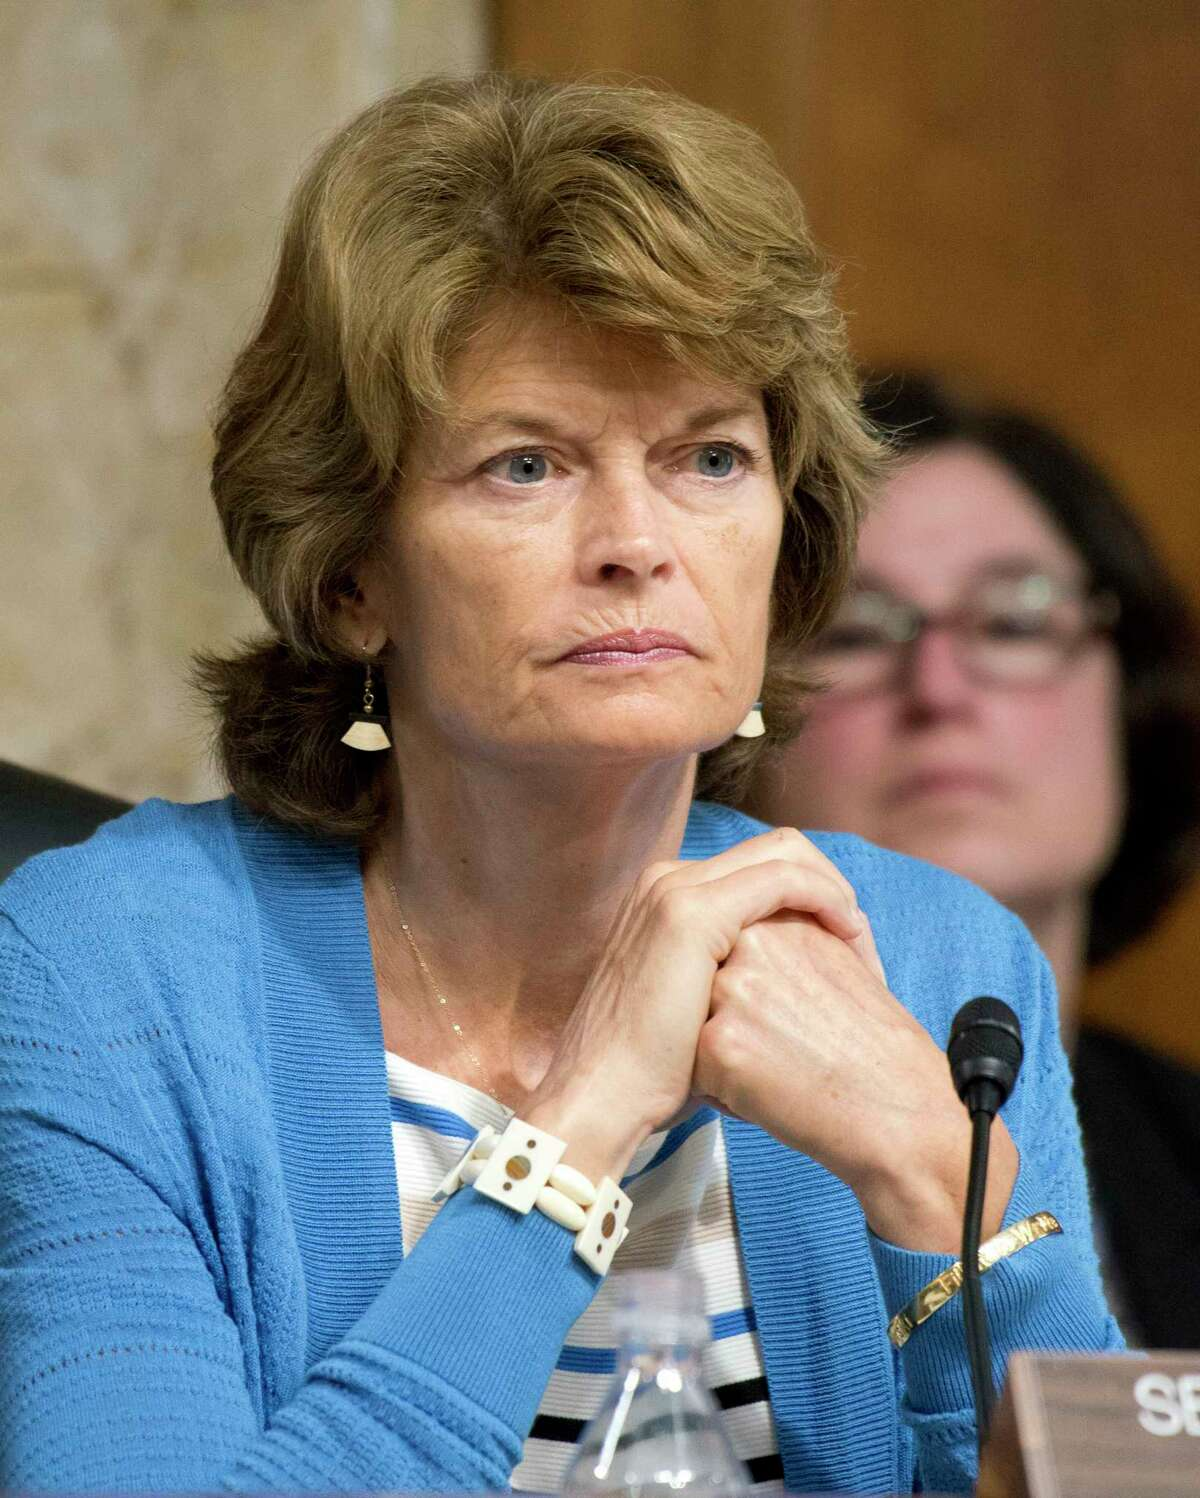 U.S. Sen. Lisa Murkowski (R-Alaska), chairwoman of the Senate Committee on Energy and Resources, shown on June 20, 2017 on Capitol Hill in Washington, D.C. (Ron Sachs/CNP/Sipa USA/TNS)